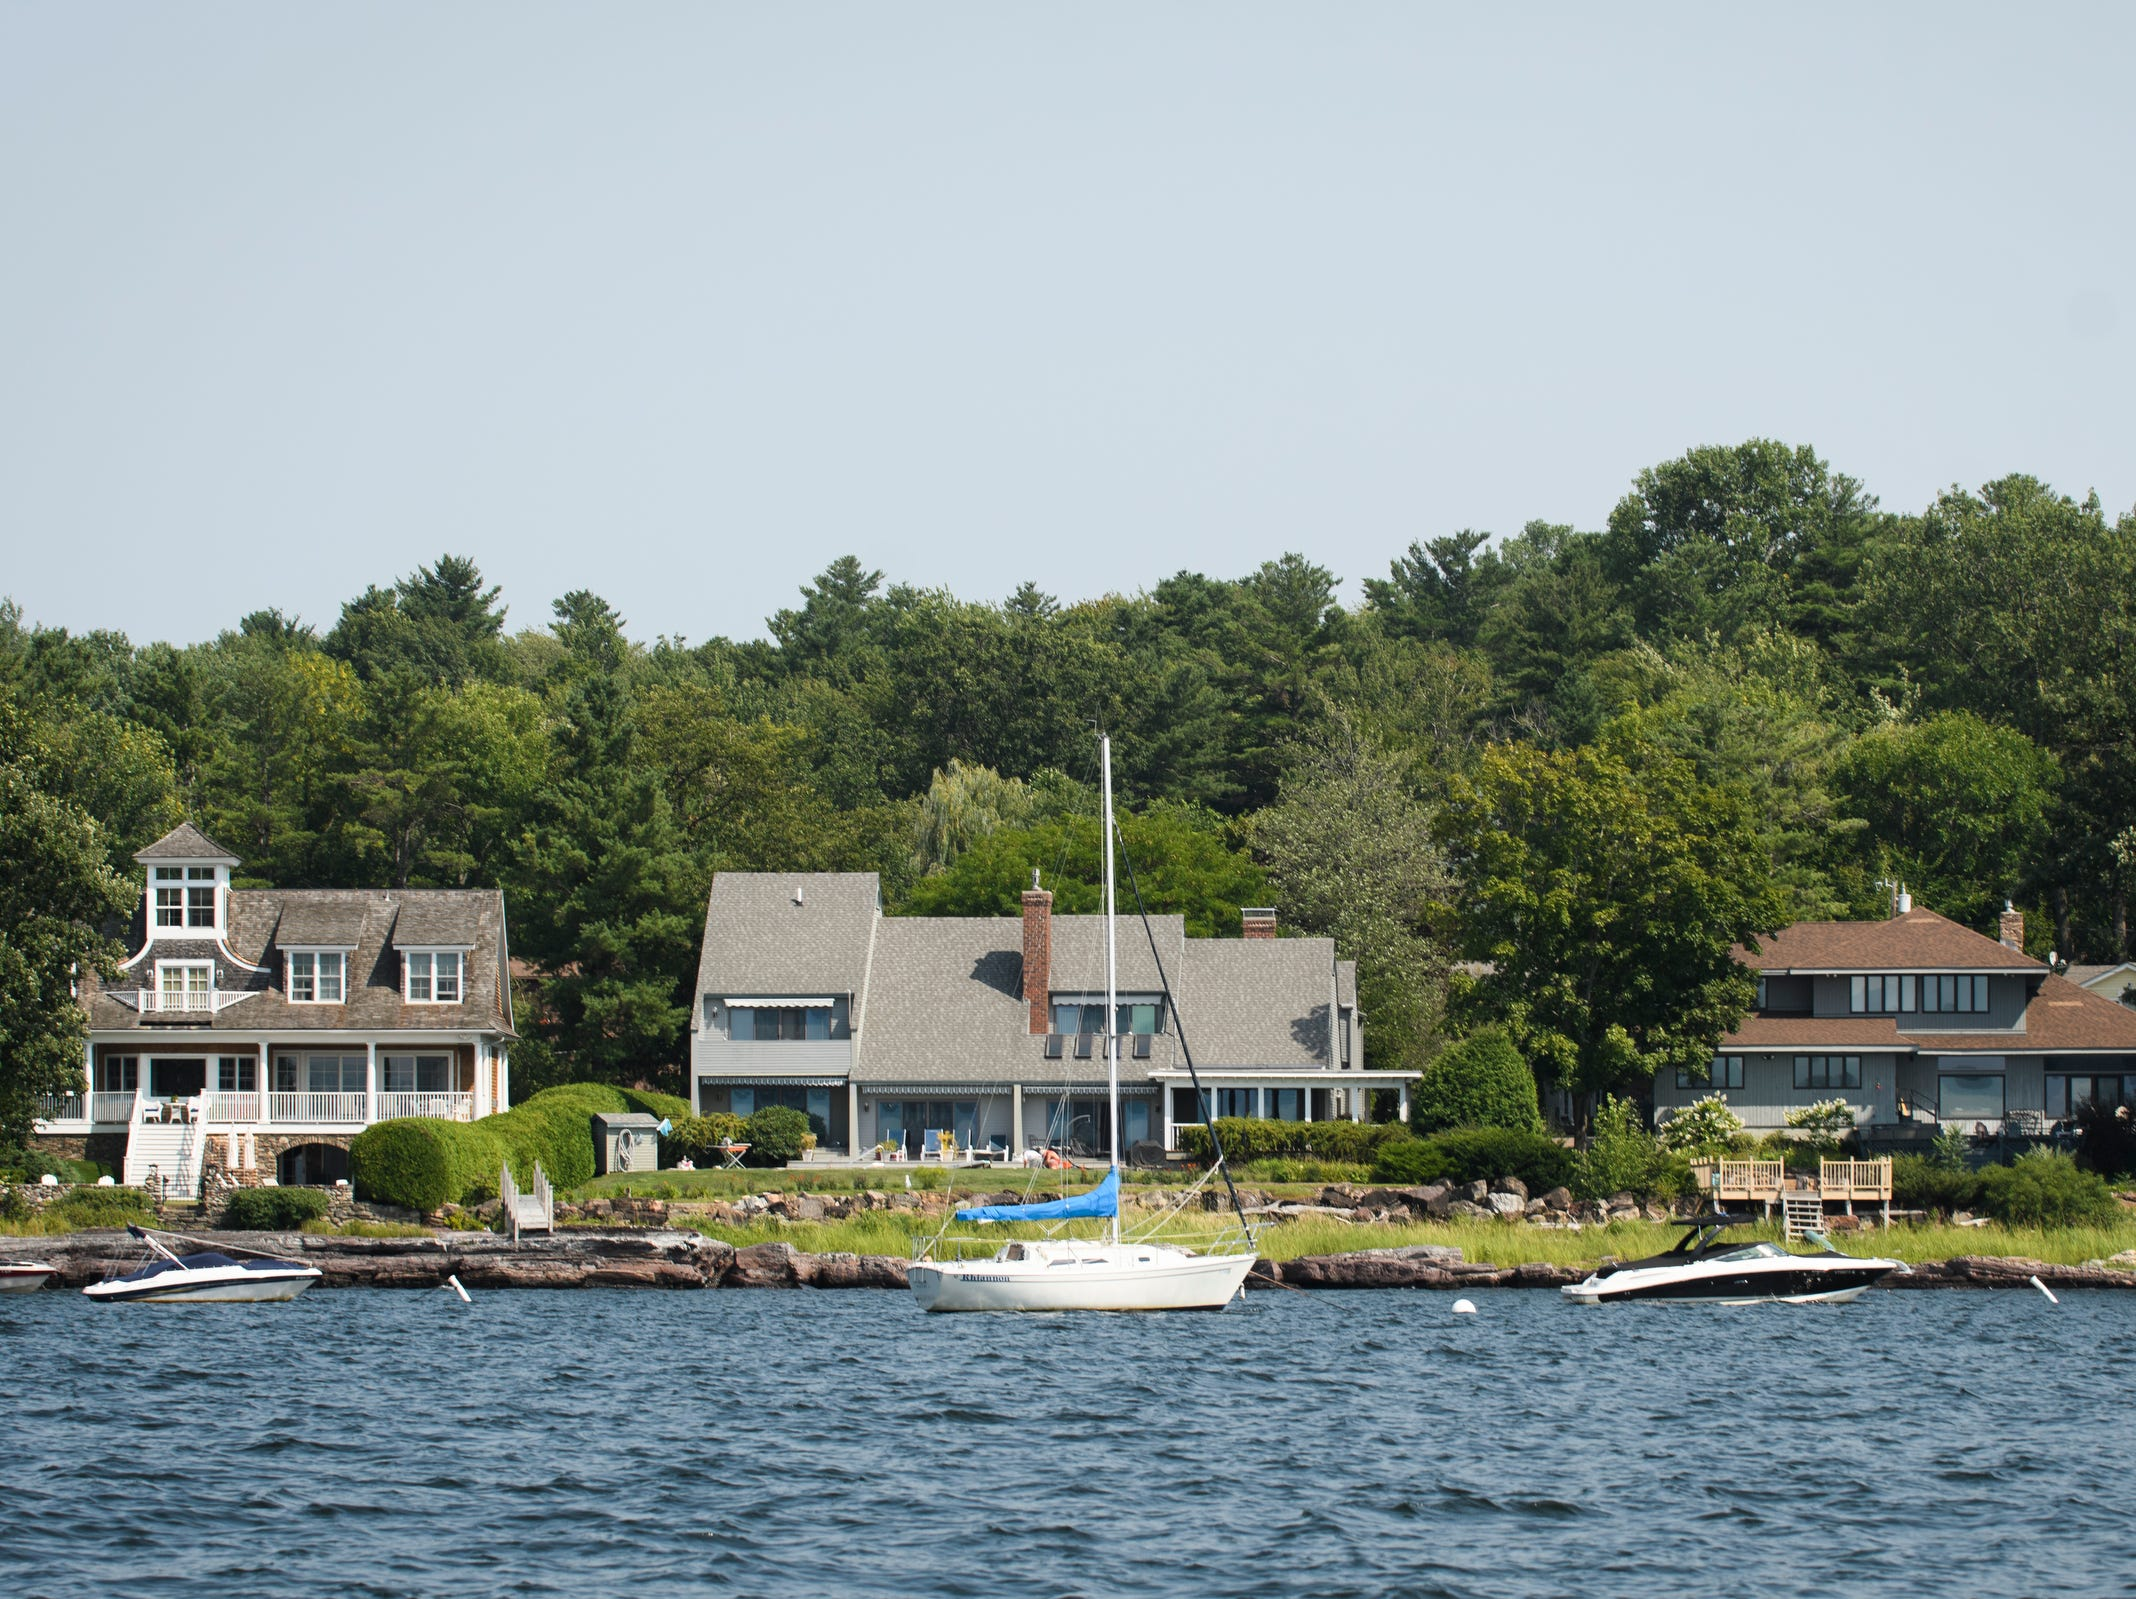 A house on the water during a tour of the waterfront real estate along the shores of Lake Champlain on Friday afternoon August 24, 2018 in Shelburne Bay.